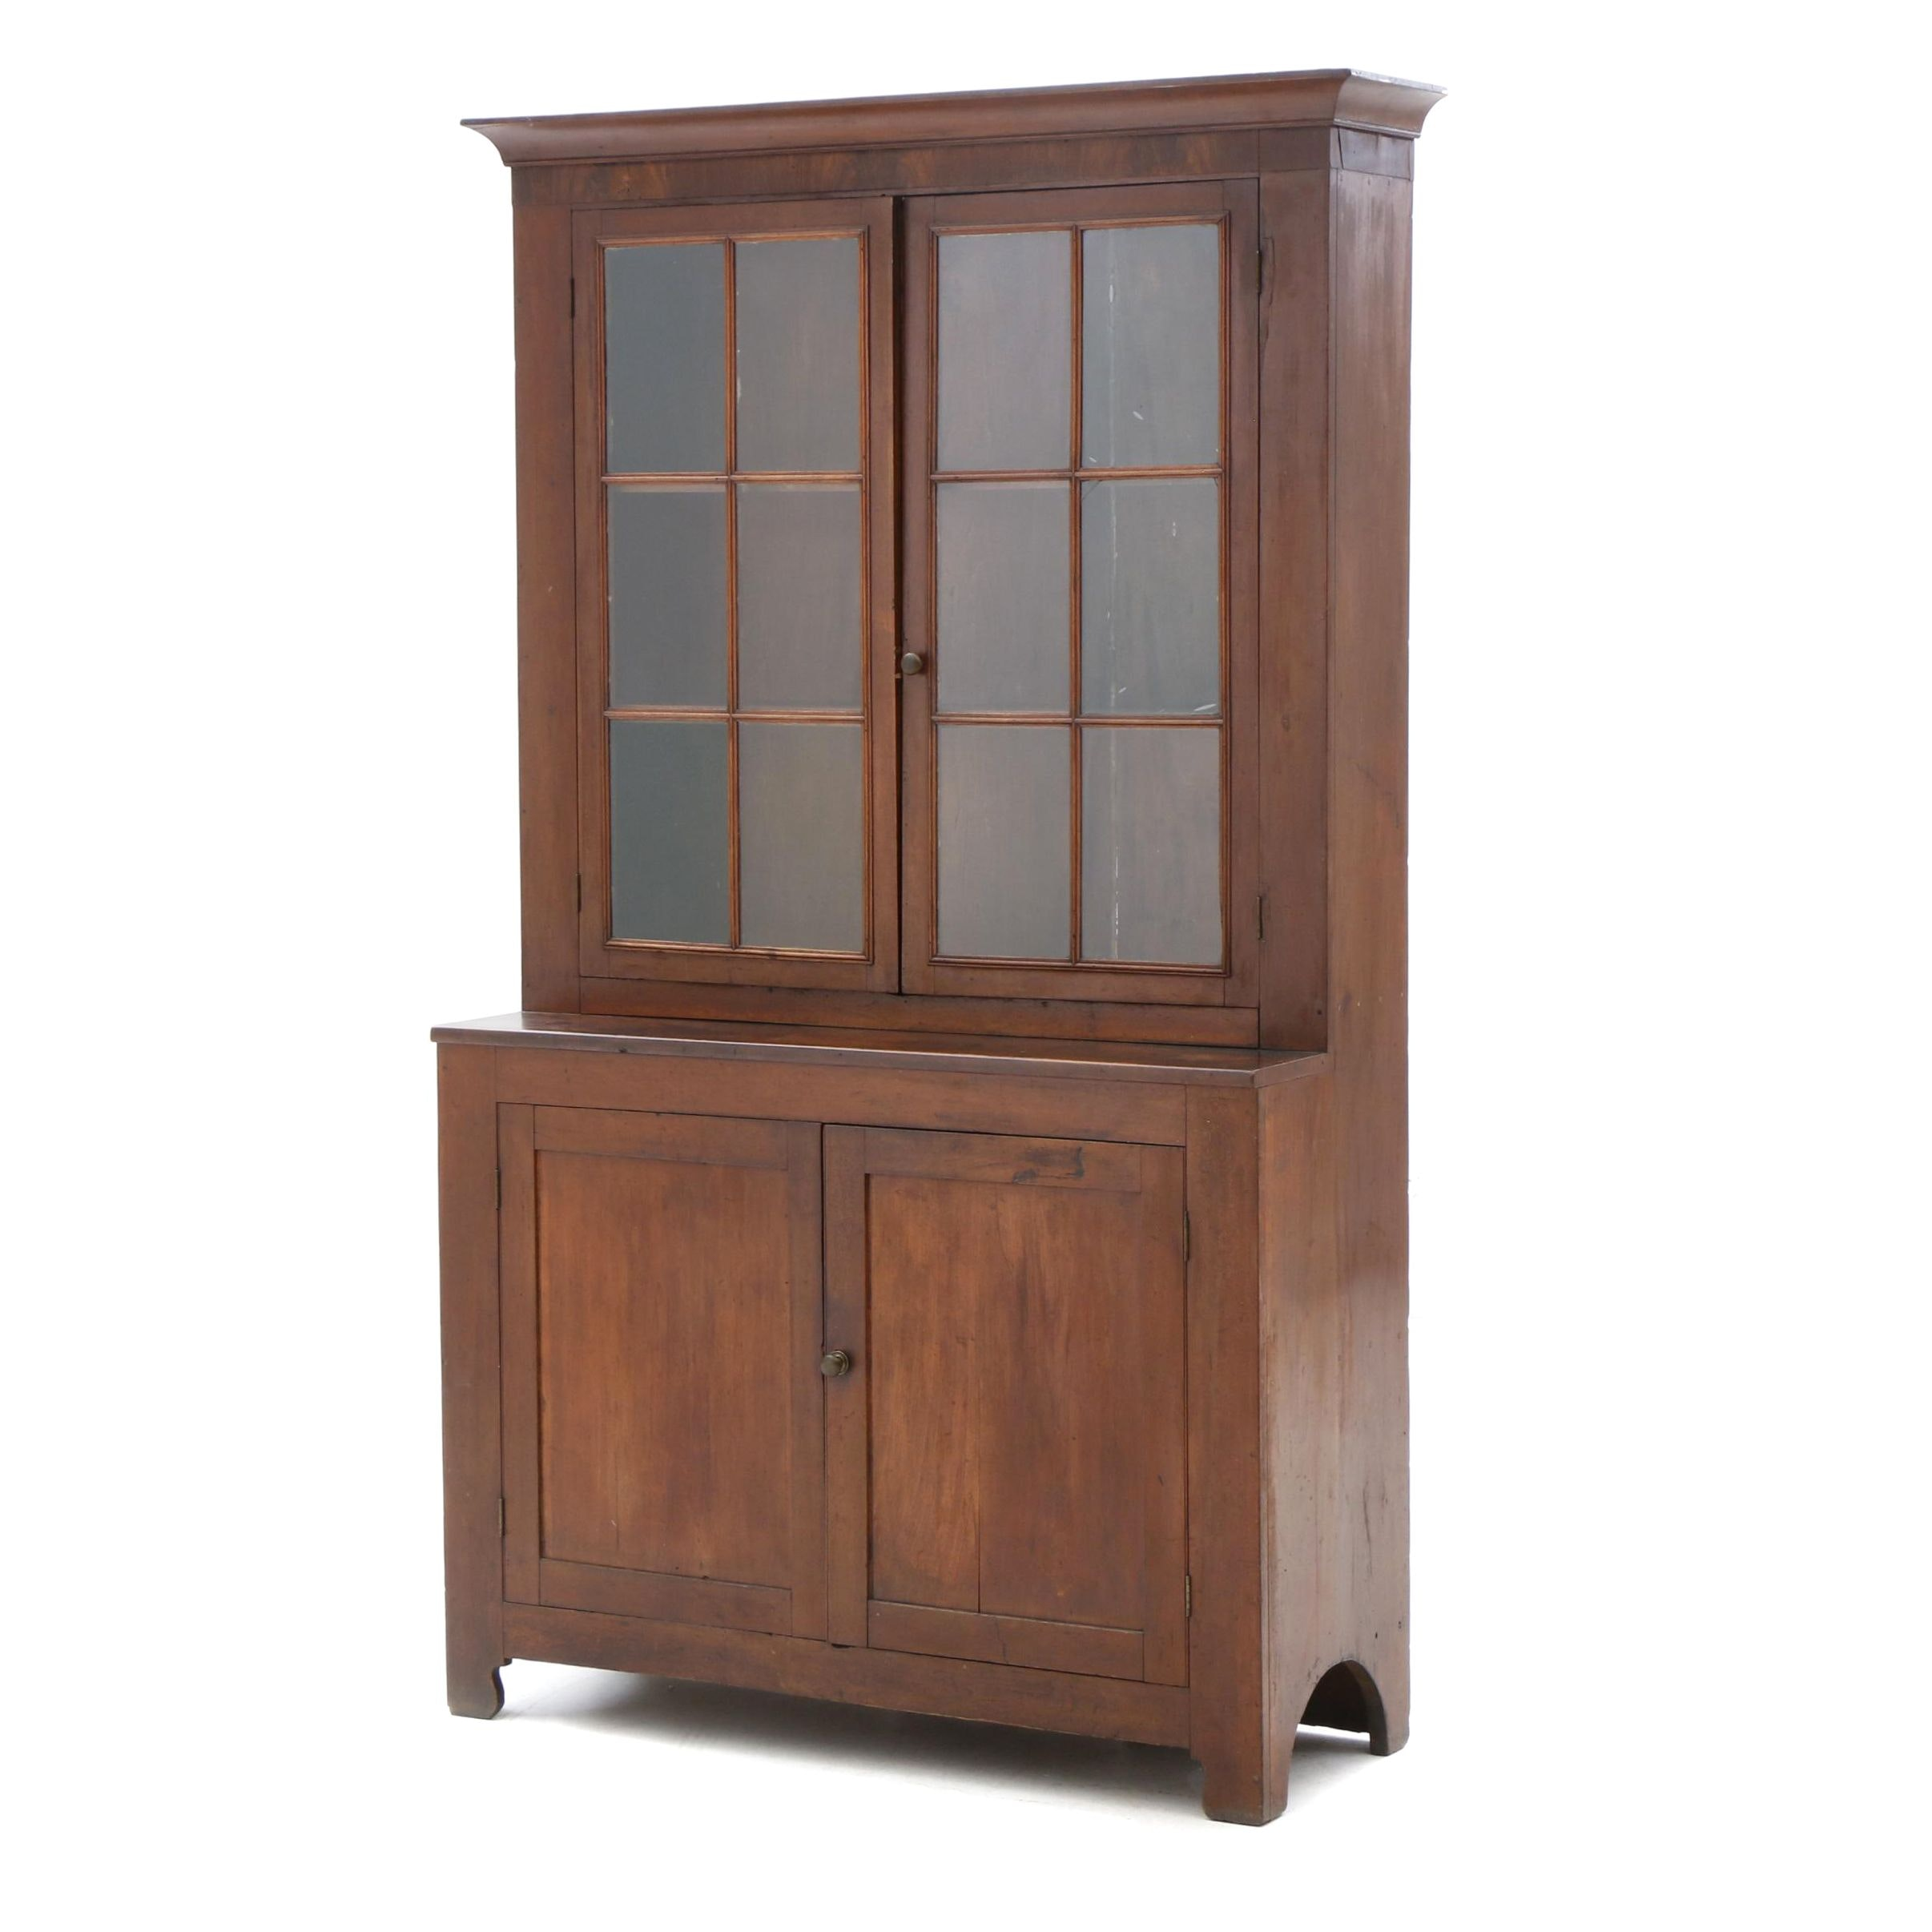 American Federal Cherry and Mahogany Cupboard, circa 1830